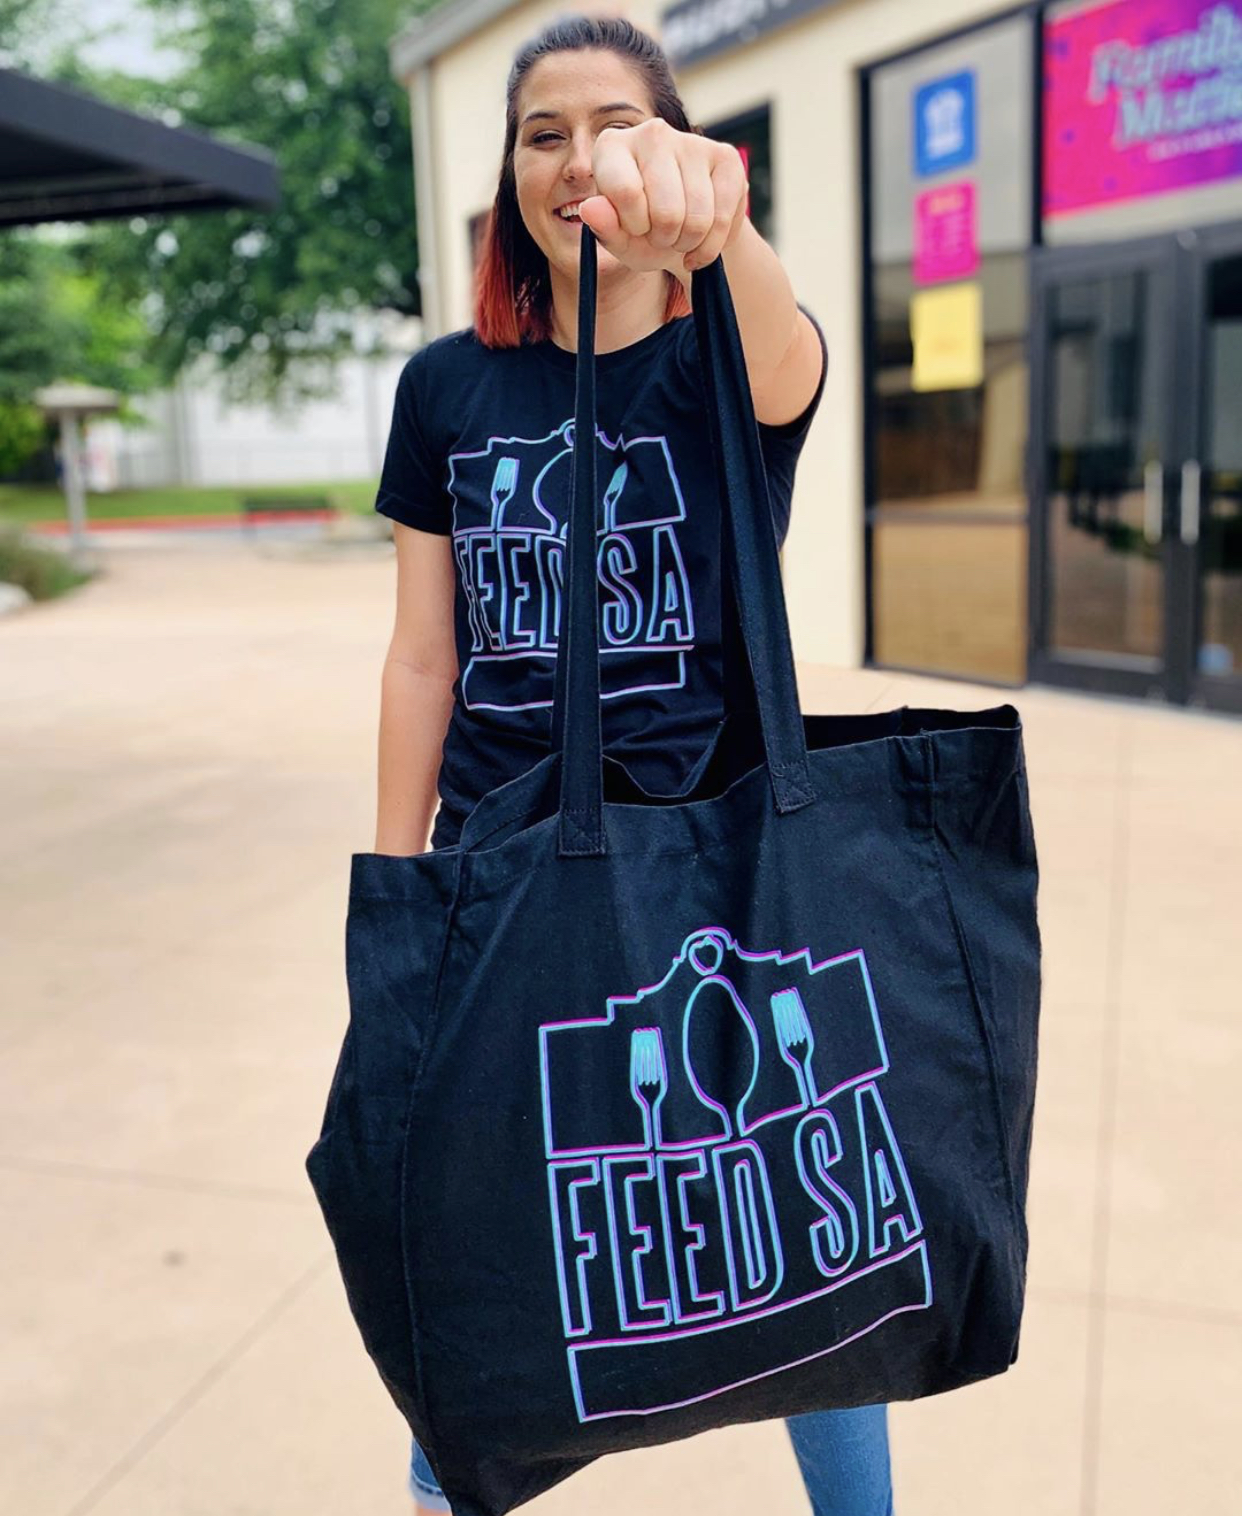 FEED SA - Feed SA is a local community movement devoted to fighting hunger and feeding hope.  Every year, Life Point Church joins forces with churches and organizations across the city to provide food for thousands of families in need.